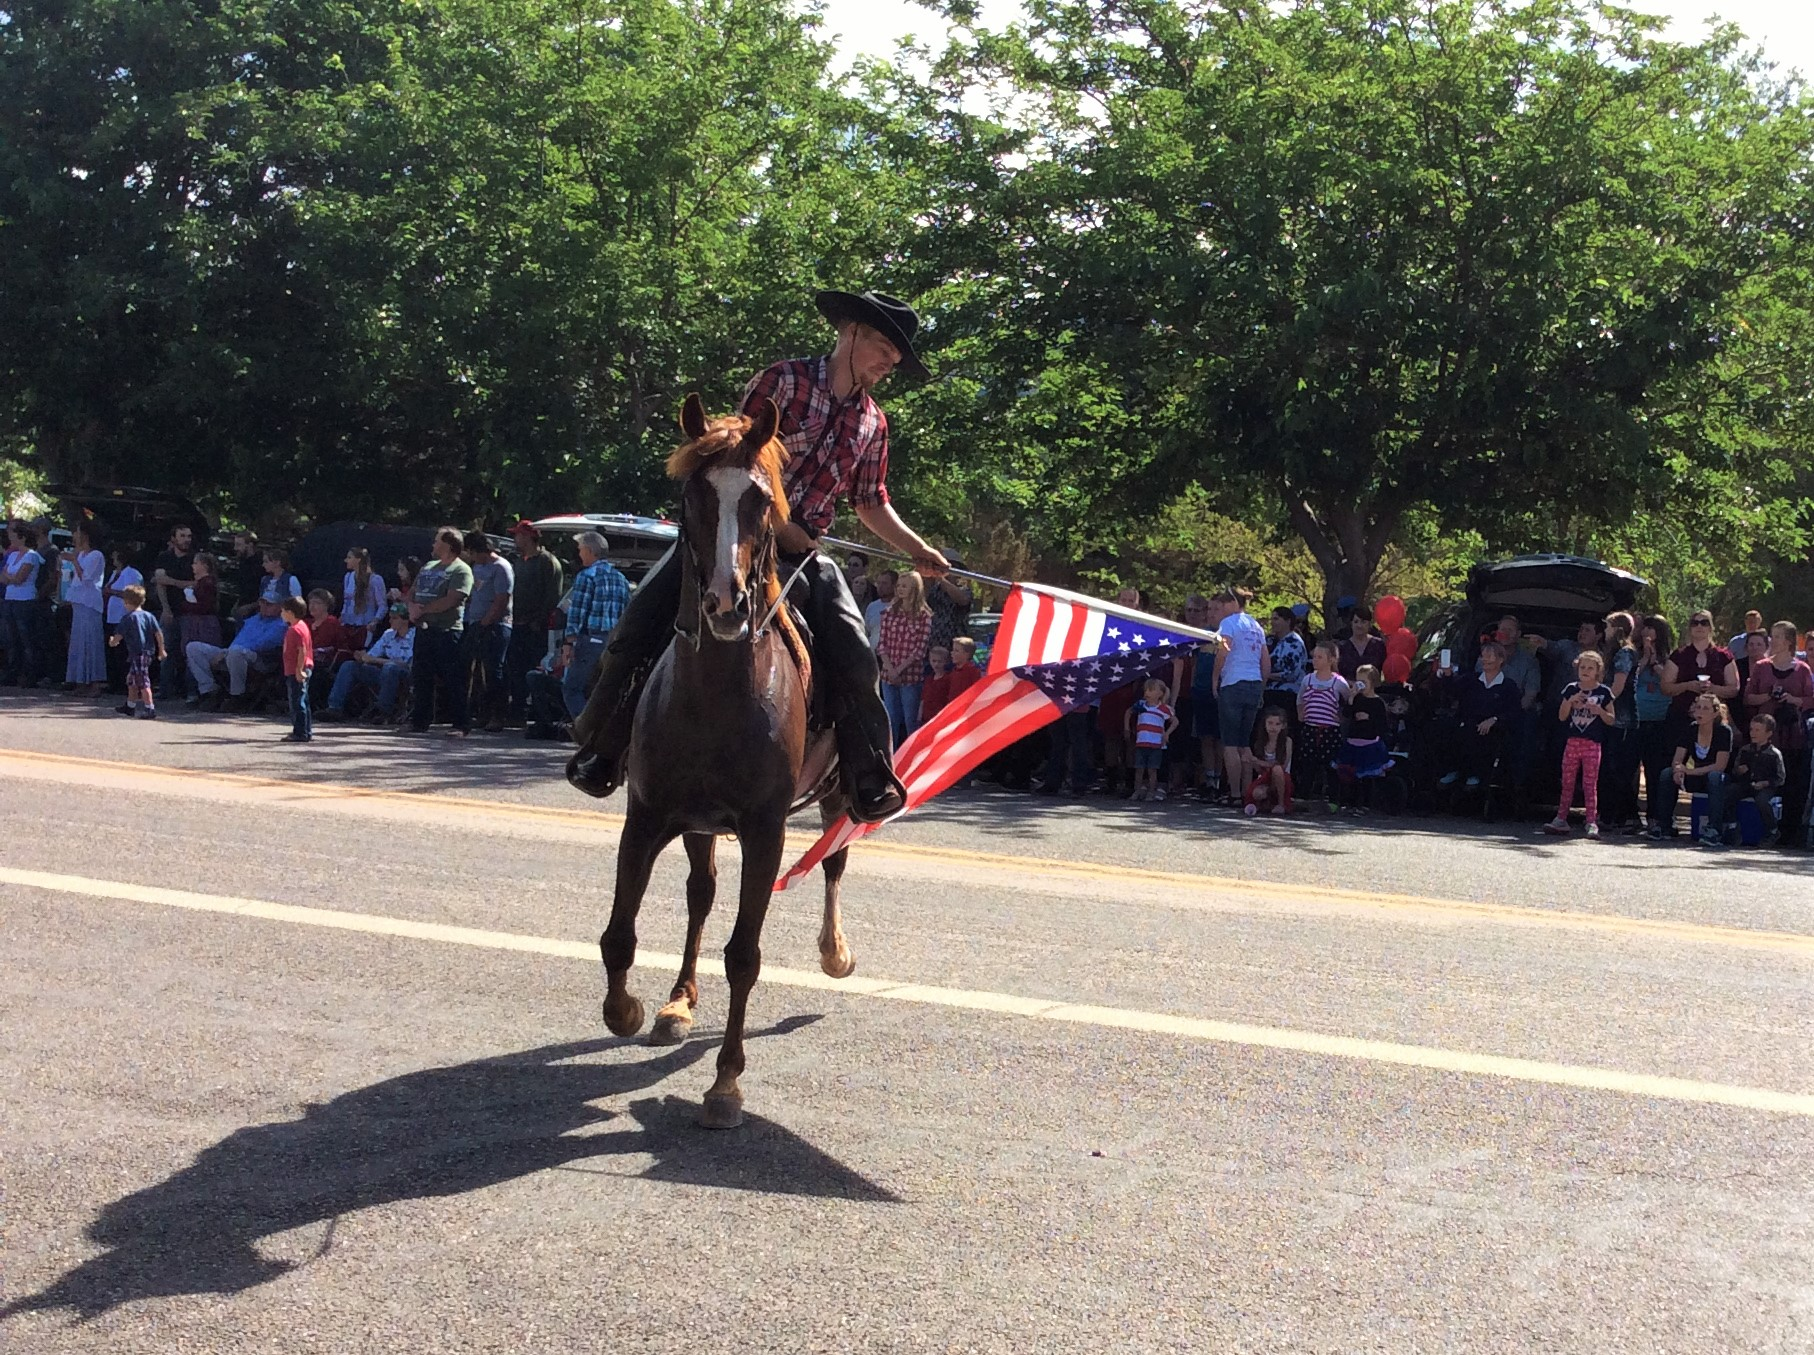 Independence Day parade, Colorado City, Arizona, July 2, 2016 | Photo by Cami Cox Jim, St. George News